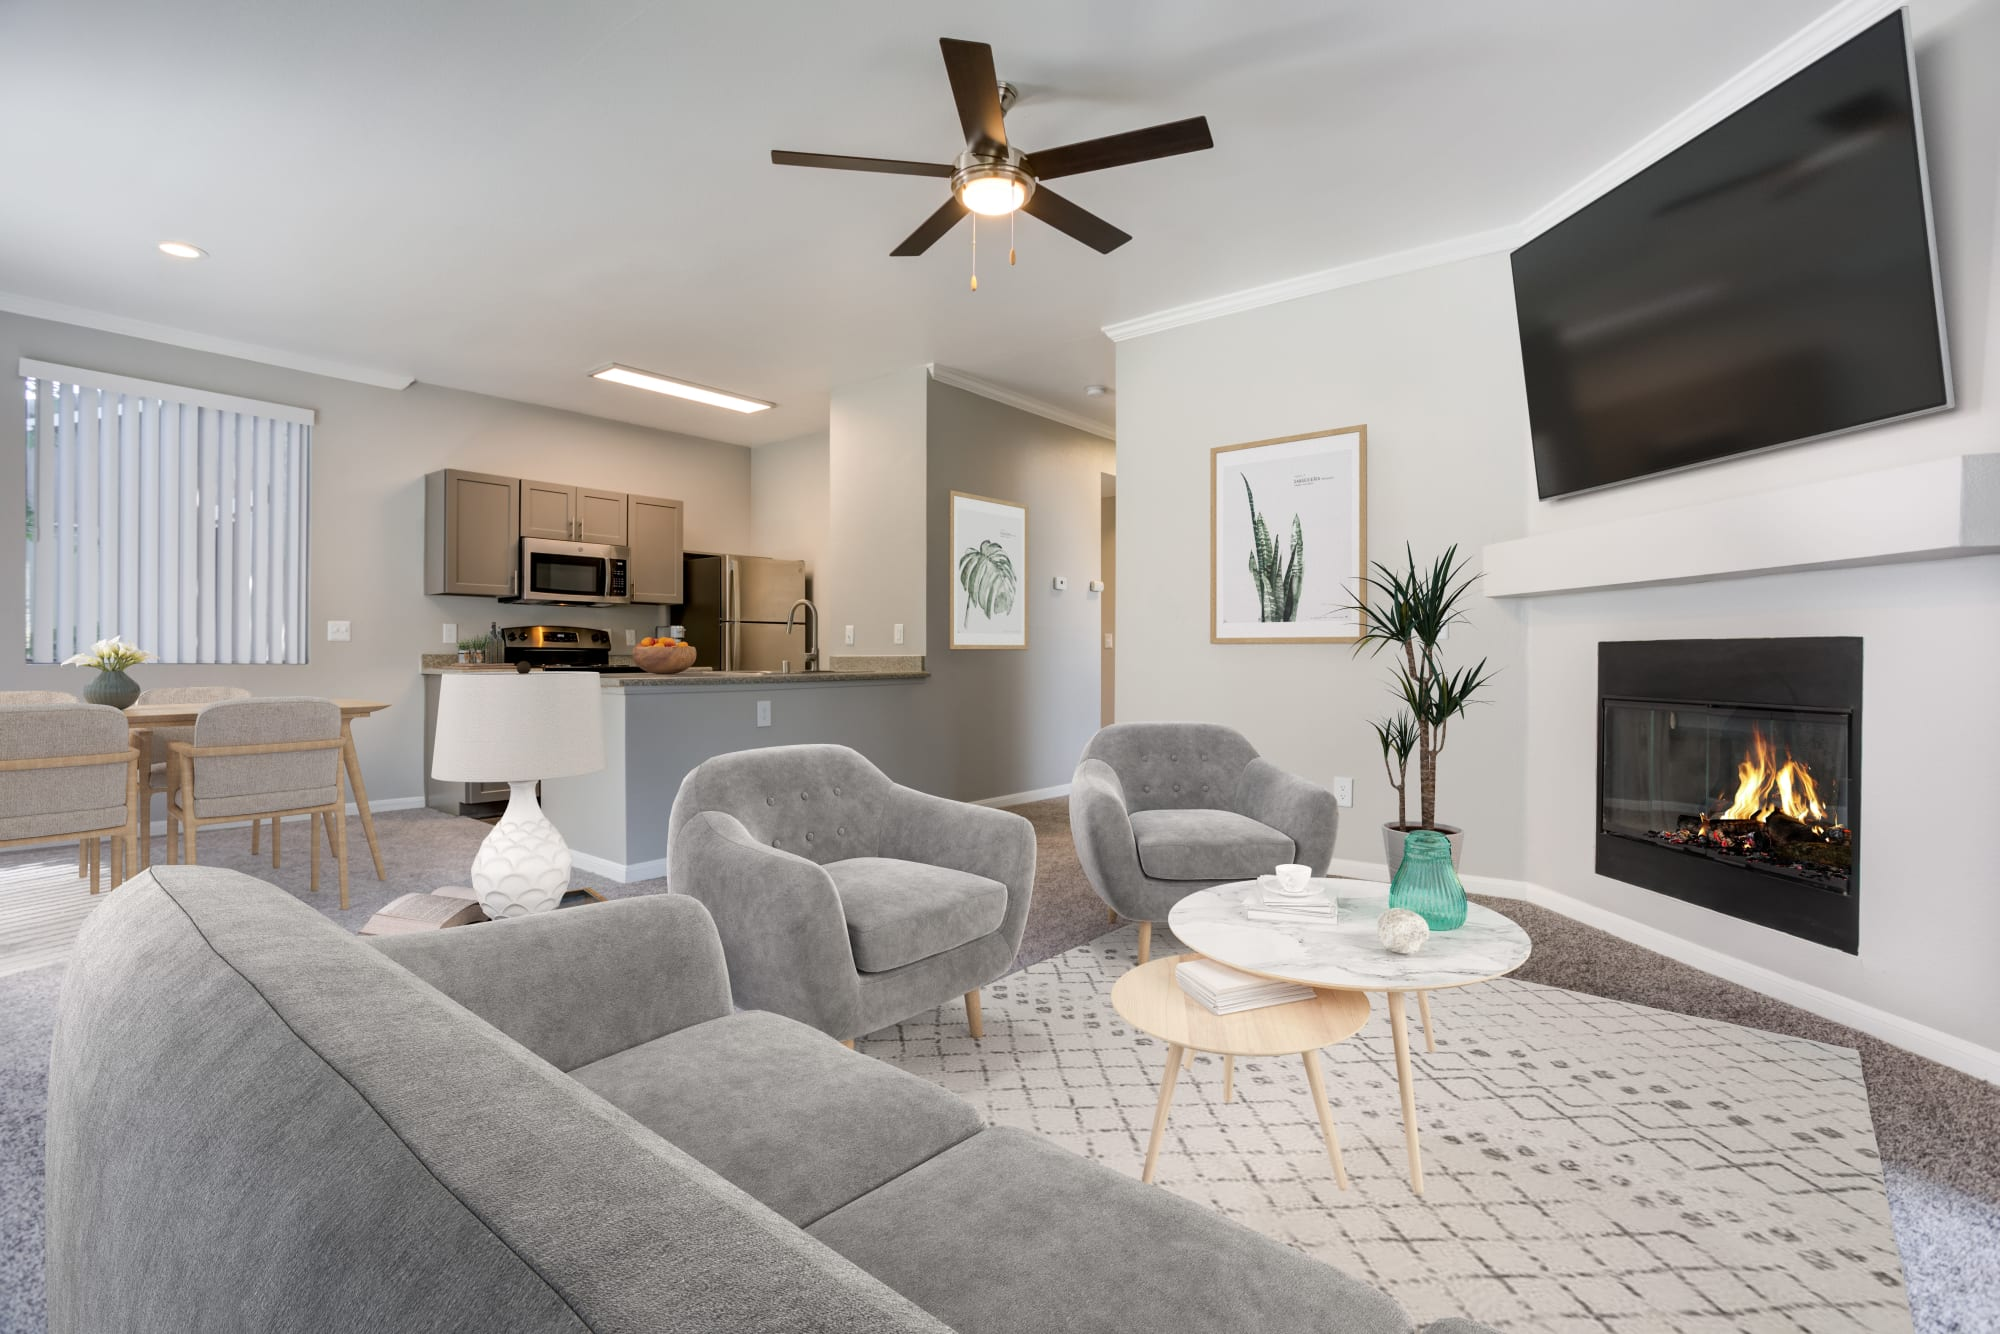 Living room layout at Miramonte and Trovas in Sacramento, California